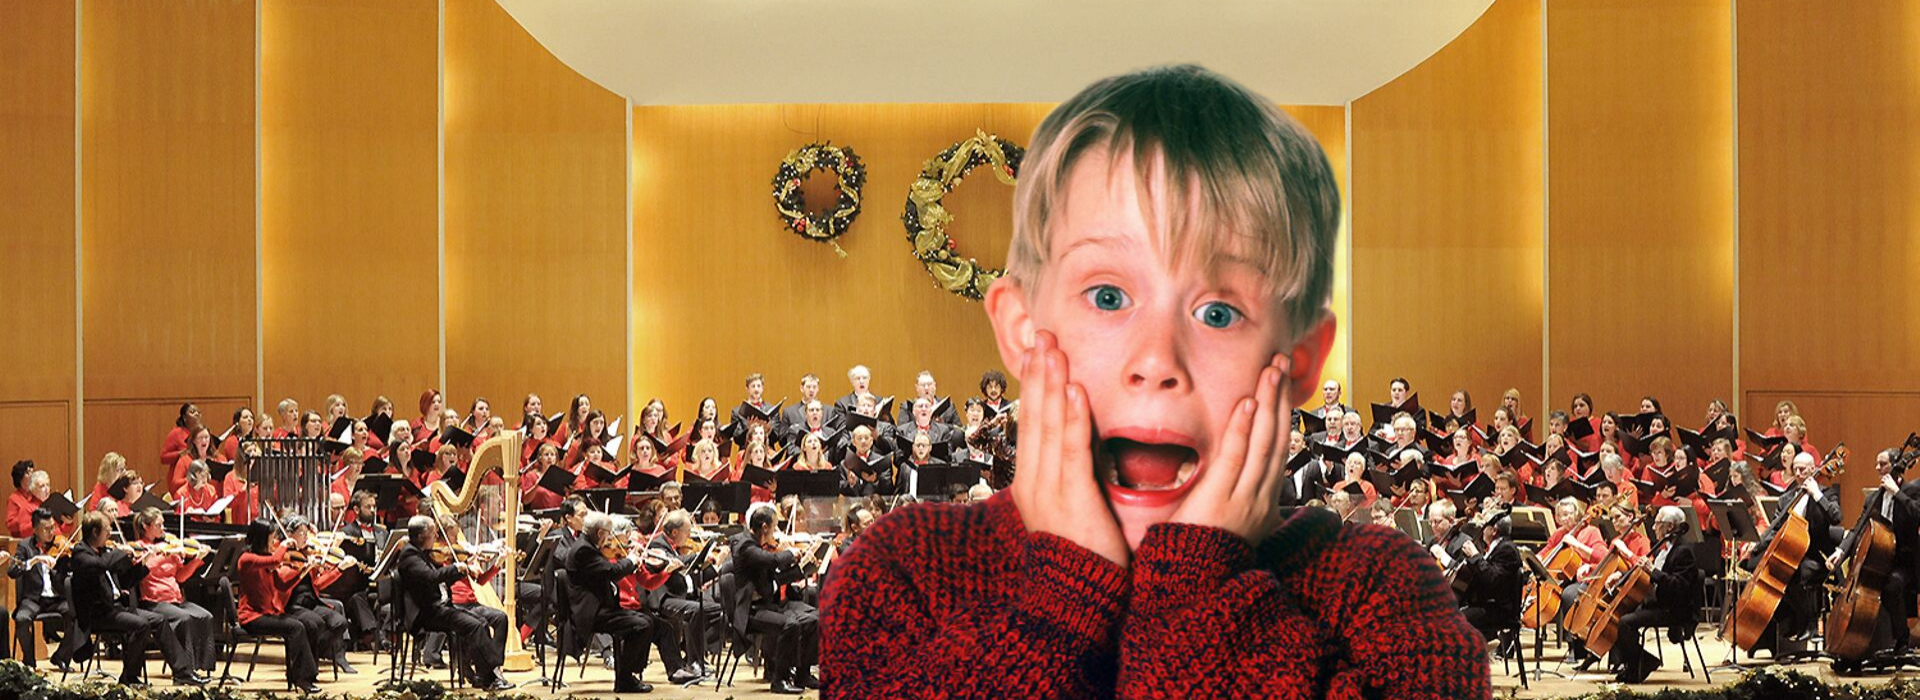 Home Alone: Film with Live Orchestra